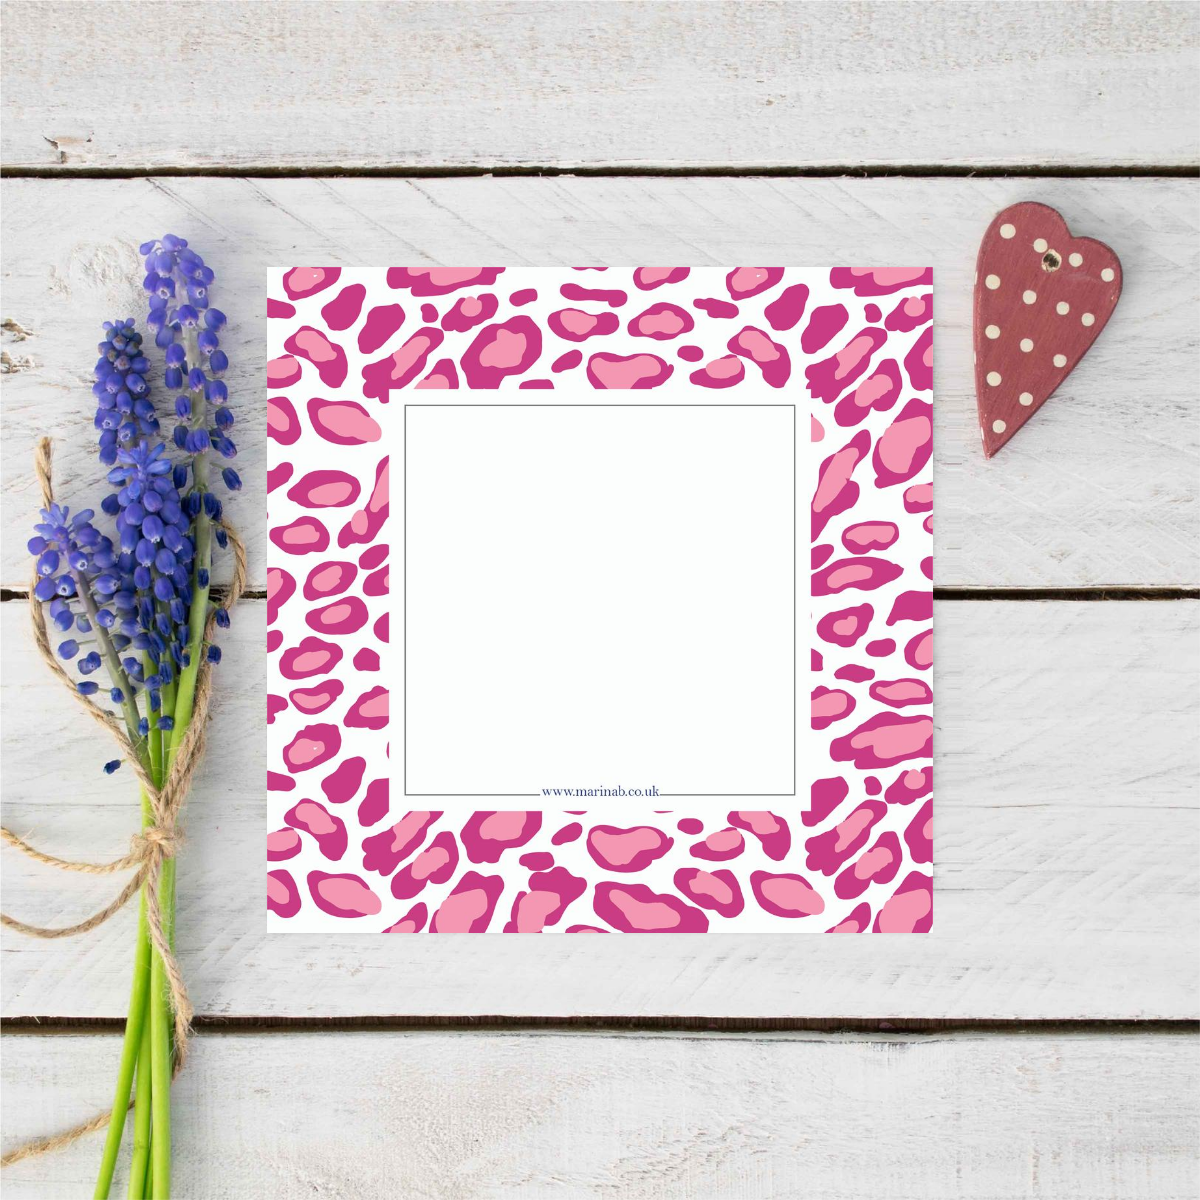 Pack of 10 Blank Animal Print Cards - Hot Pink